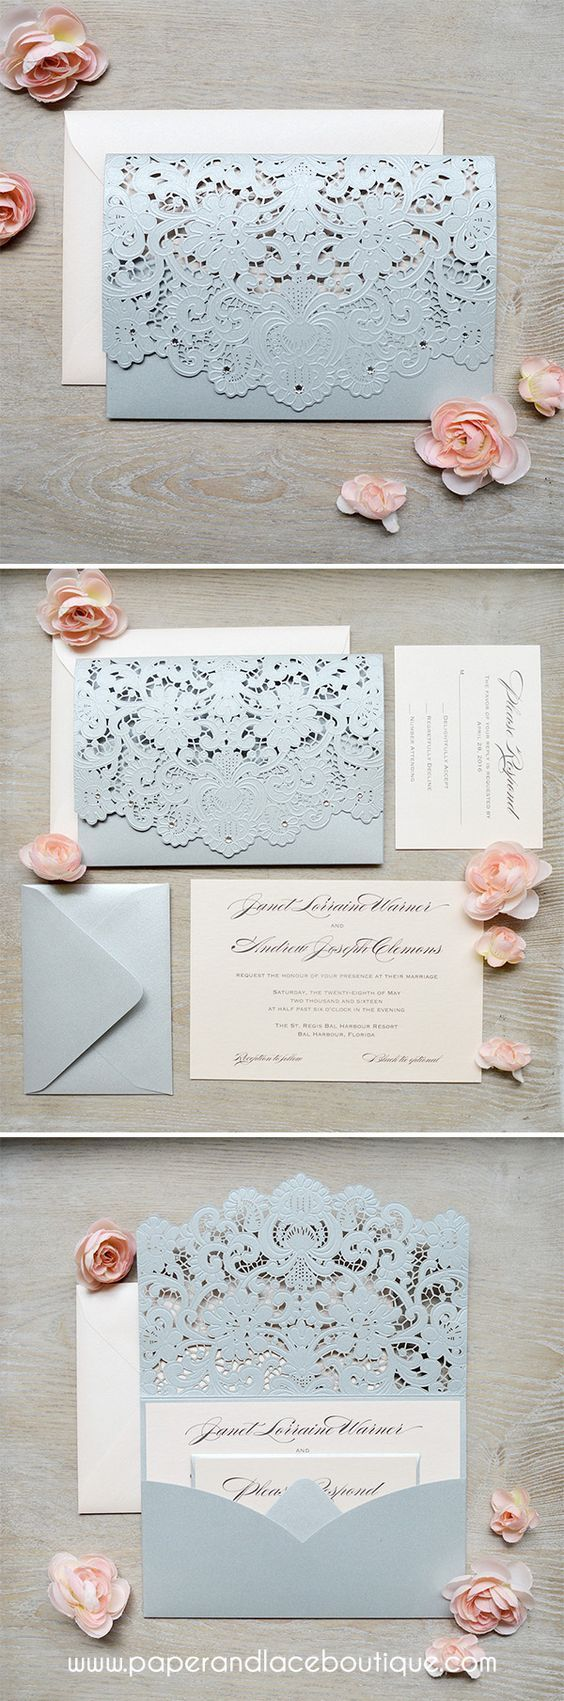 Michaels crafts wedding invitations - Invitations Michaels Craft Store Silver And Blush Laser Cut Wedding Invitations Download